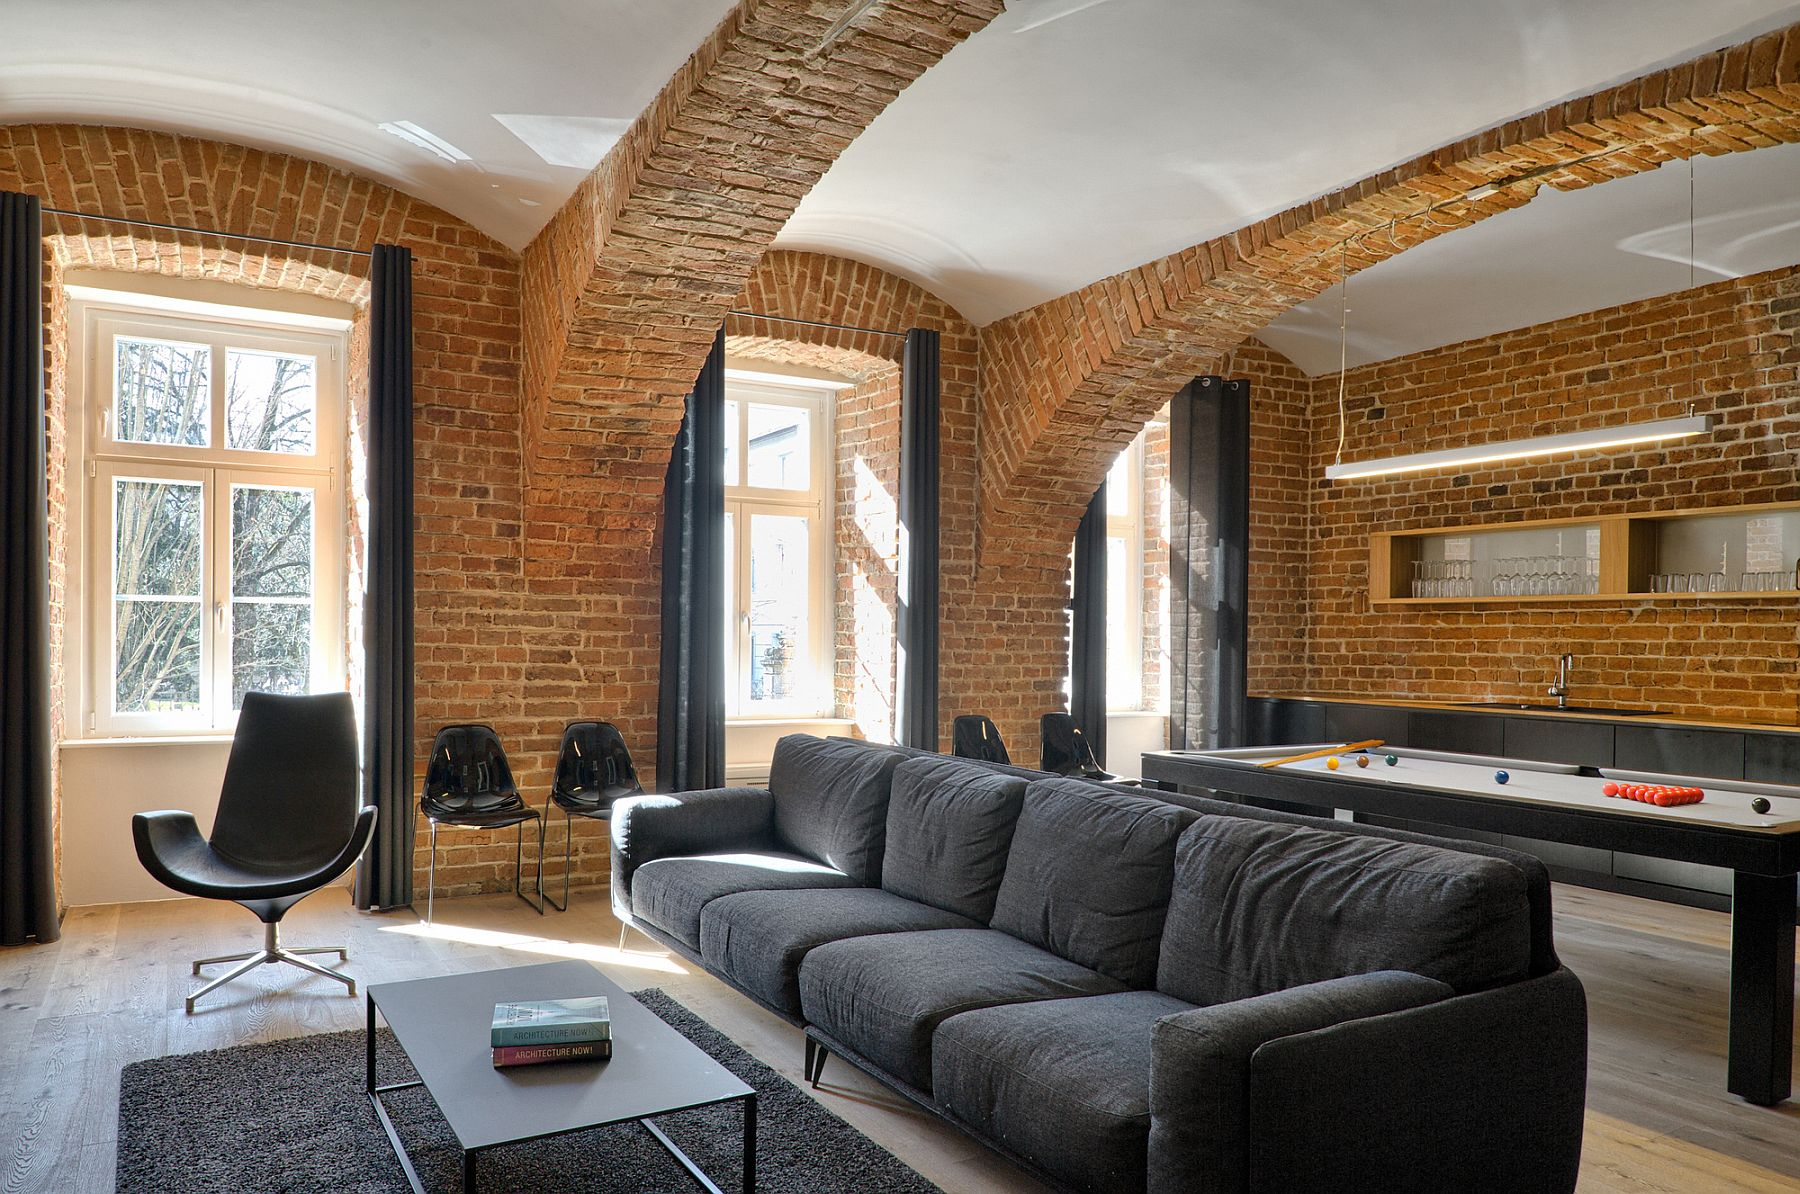 Traditional wooden framed windows bring natural light into the apartment